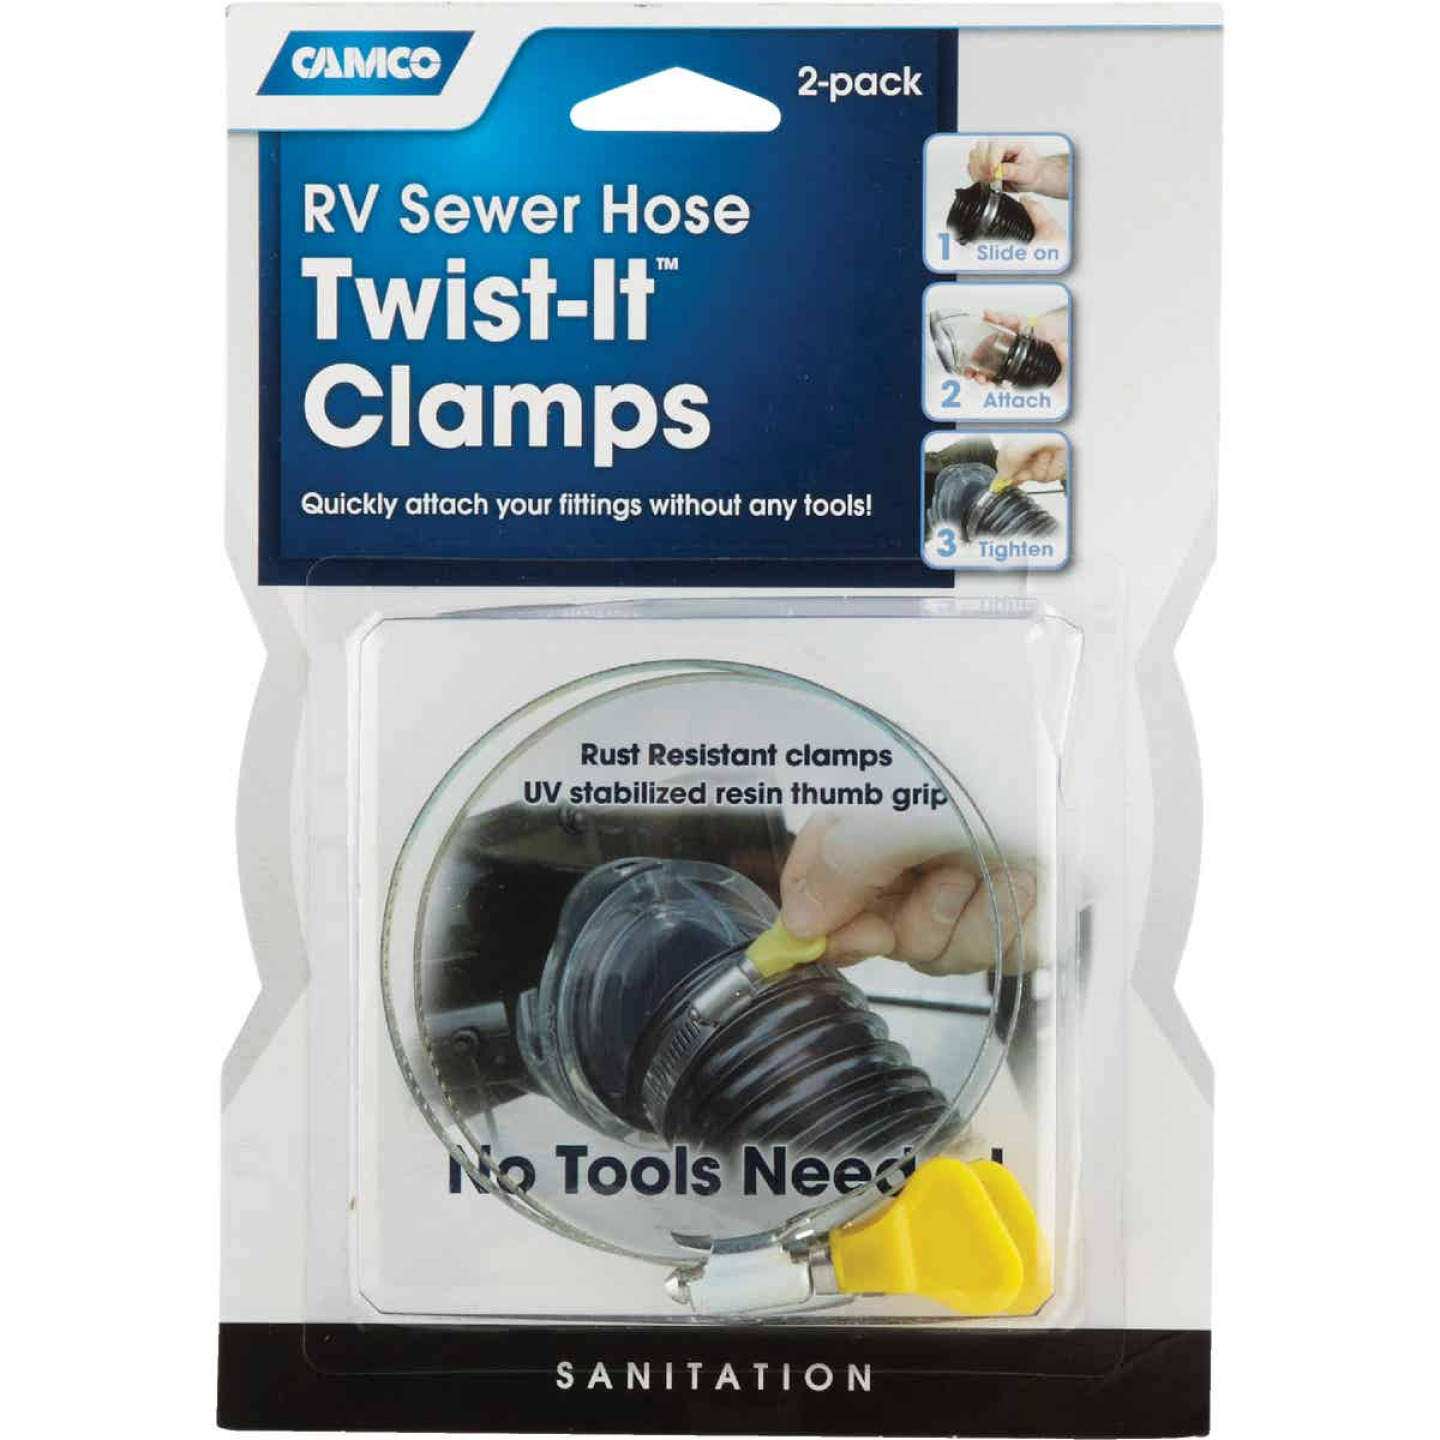 Camco 3 In. Twist-It Clamp RV Sewer Hose Connector, (2-Pack) Image 2